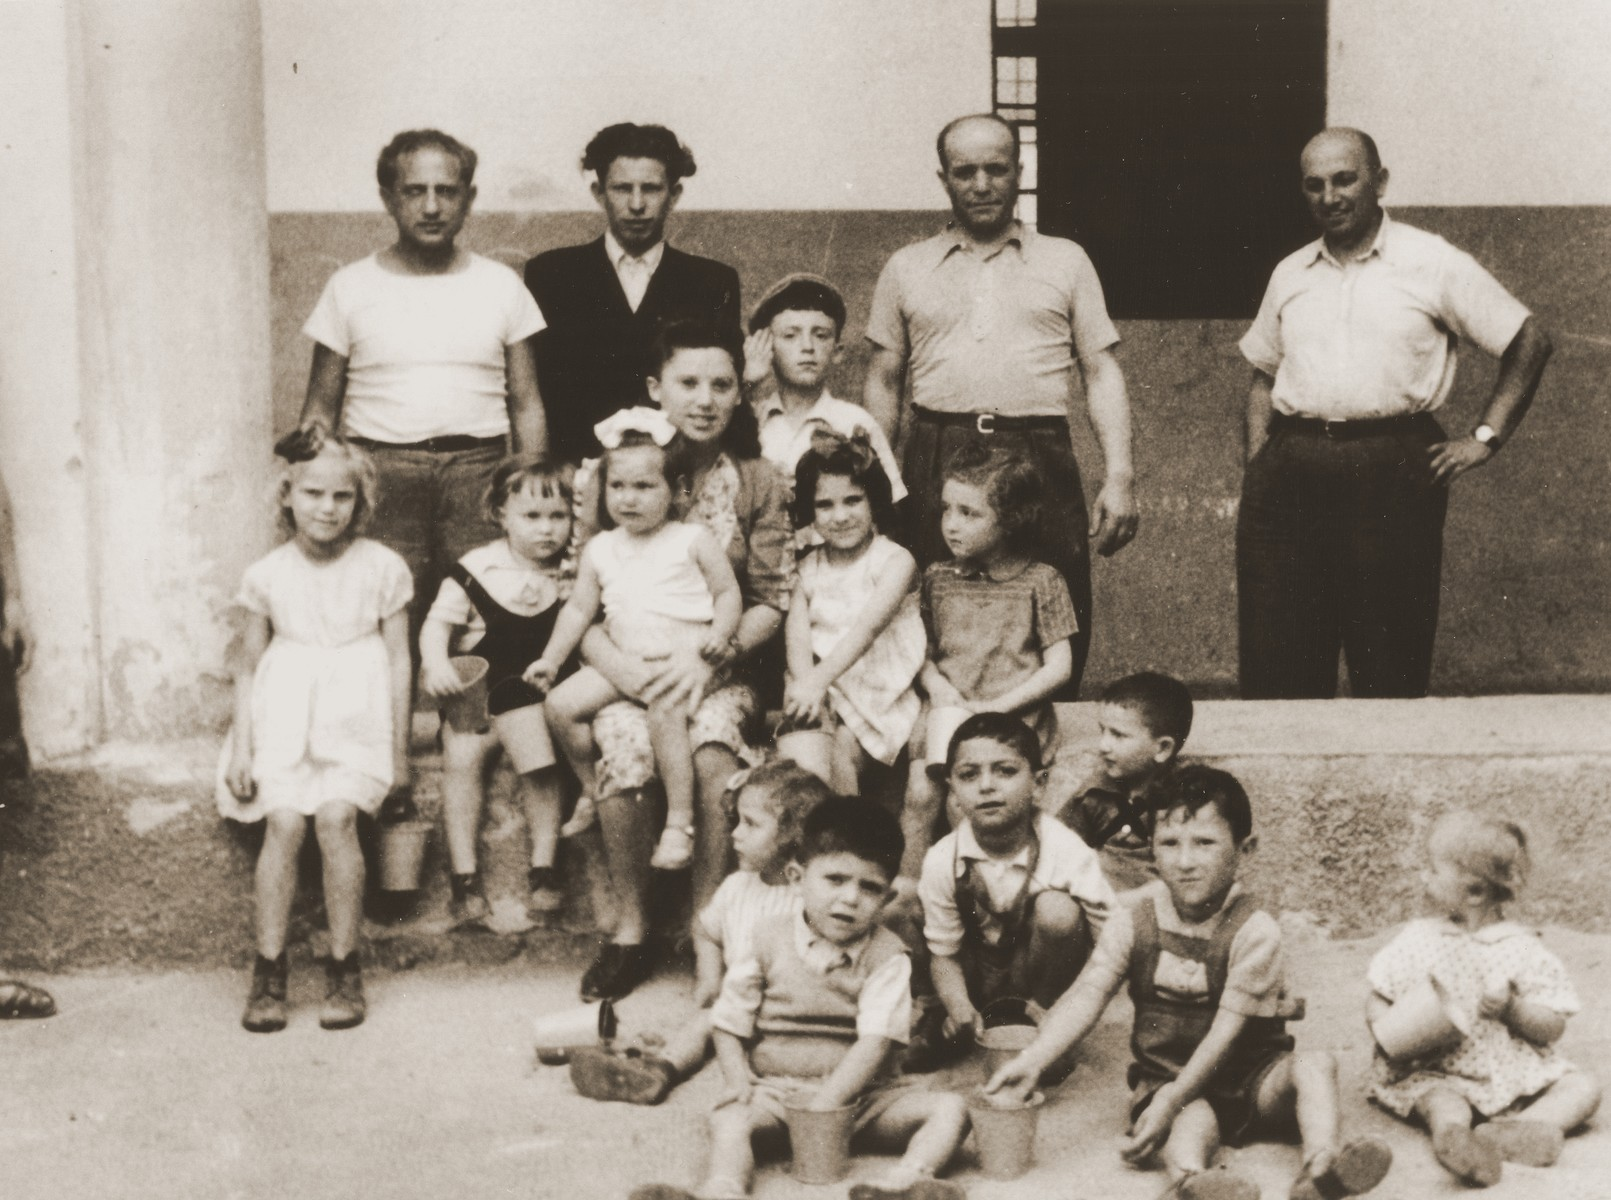 A group of Jewish DP children sit outside a building in the Cremona displaced persons camp.    Among those pictured is Masha  Leikach (seated in the middle, second from the left).